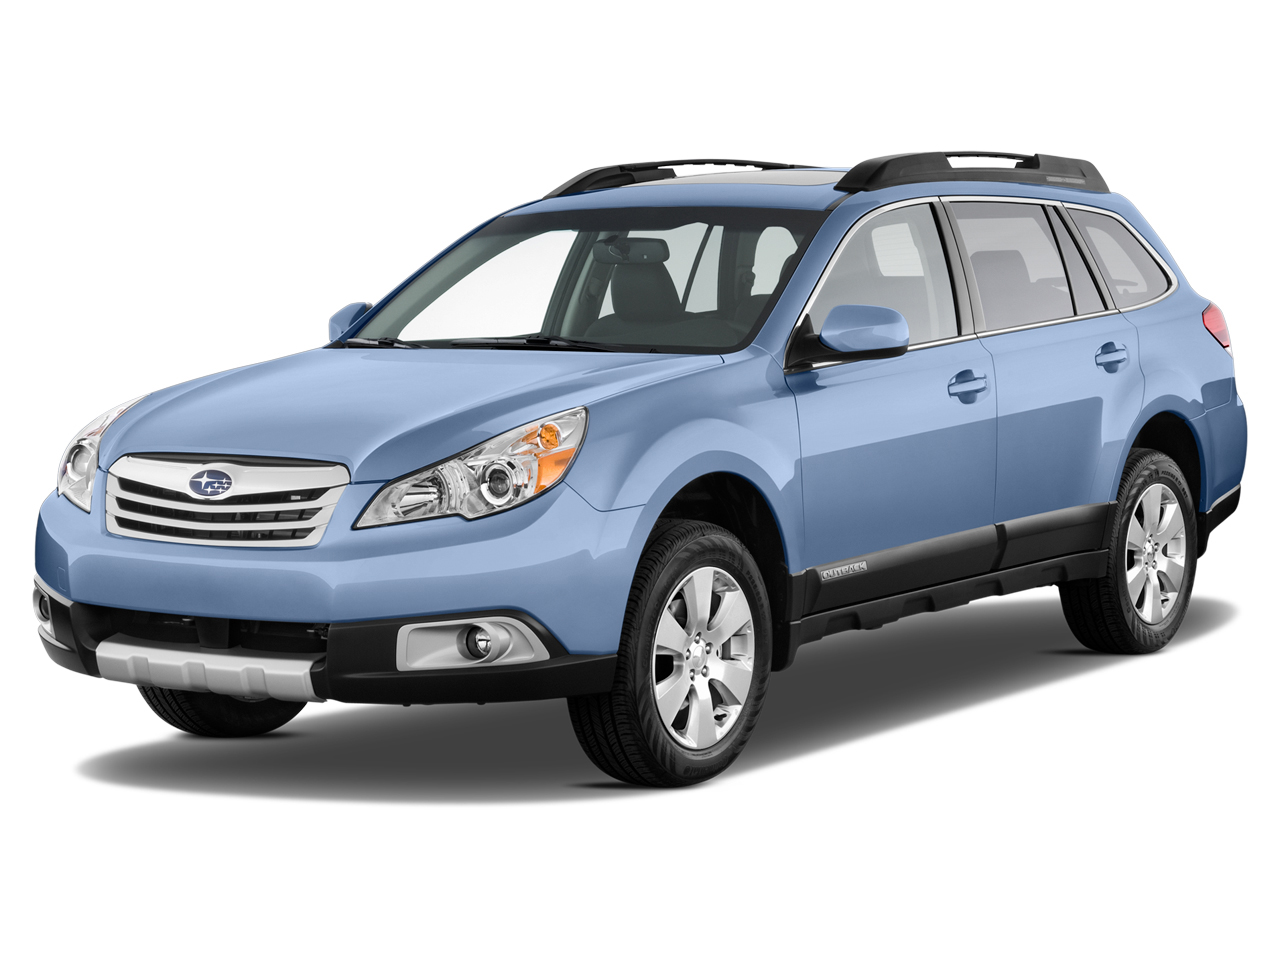 2012 subaru outback review ratings specs prices and photos the car connection. Black Bedroom Furniture Sets. Home Design Ideas